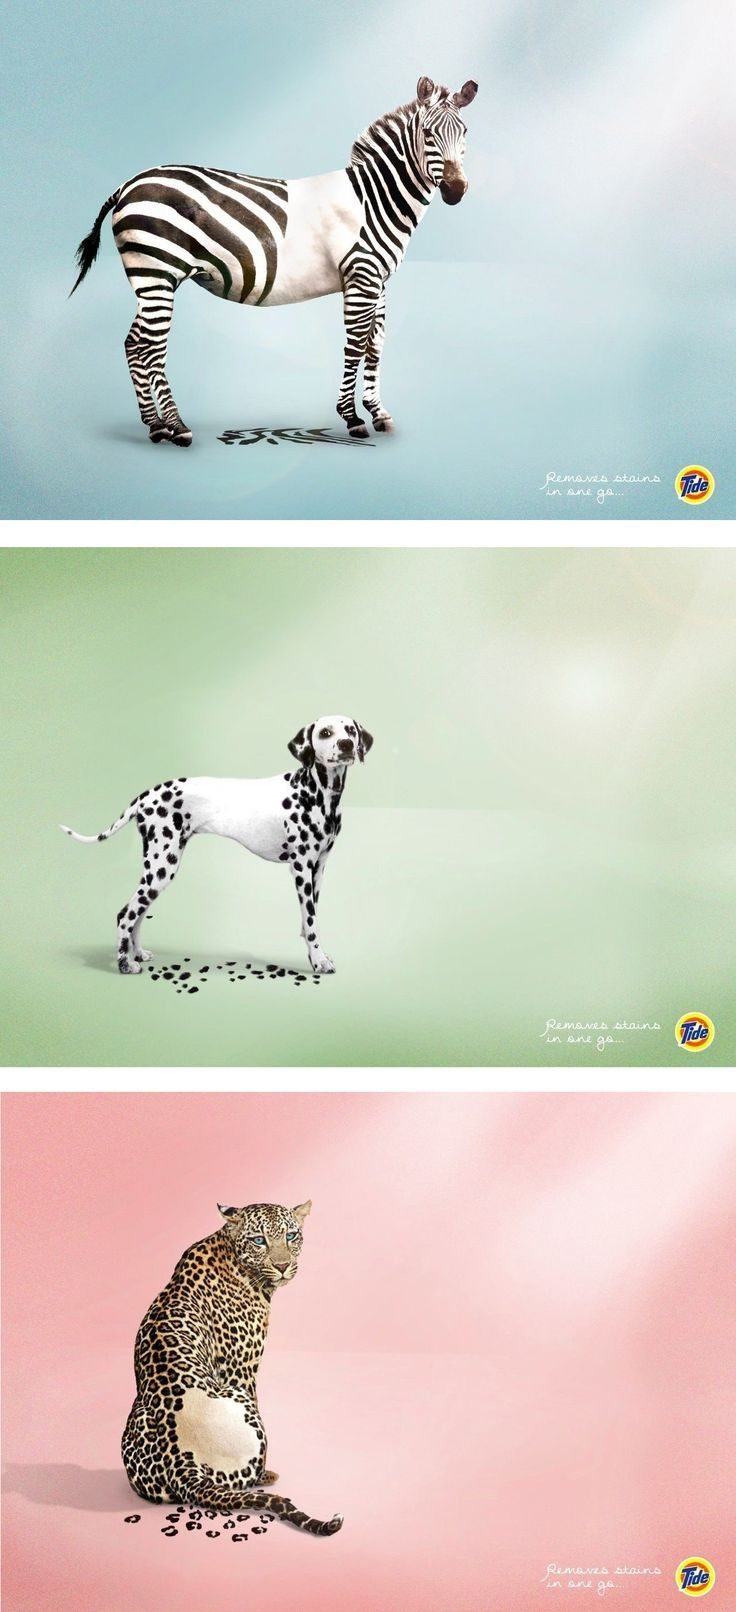 17 best images about ads oplus posters advertising they took the photo of the animal and removed their spots photo manipulation i really like how they then took the spots and places them on the floor